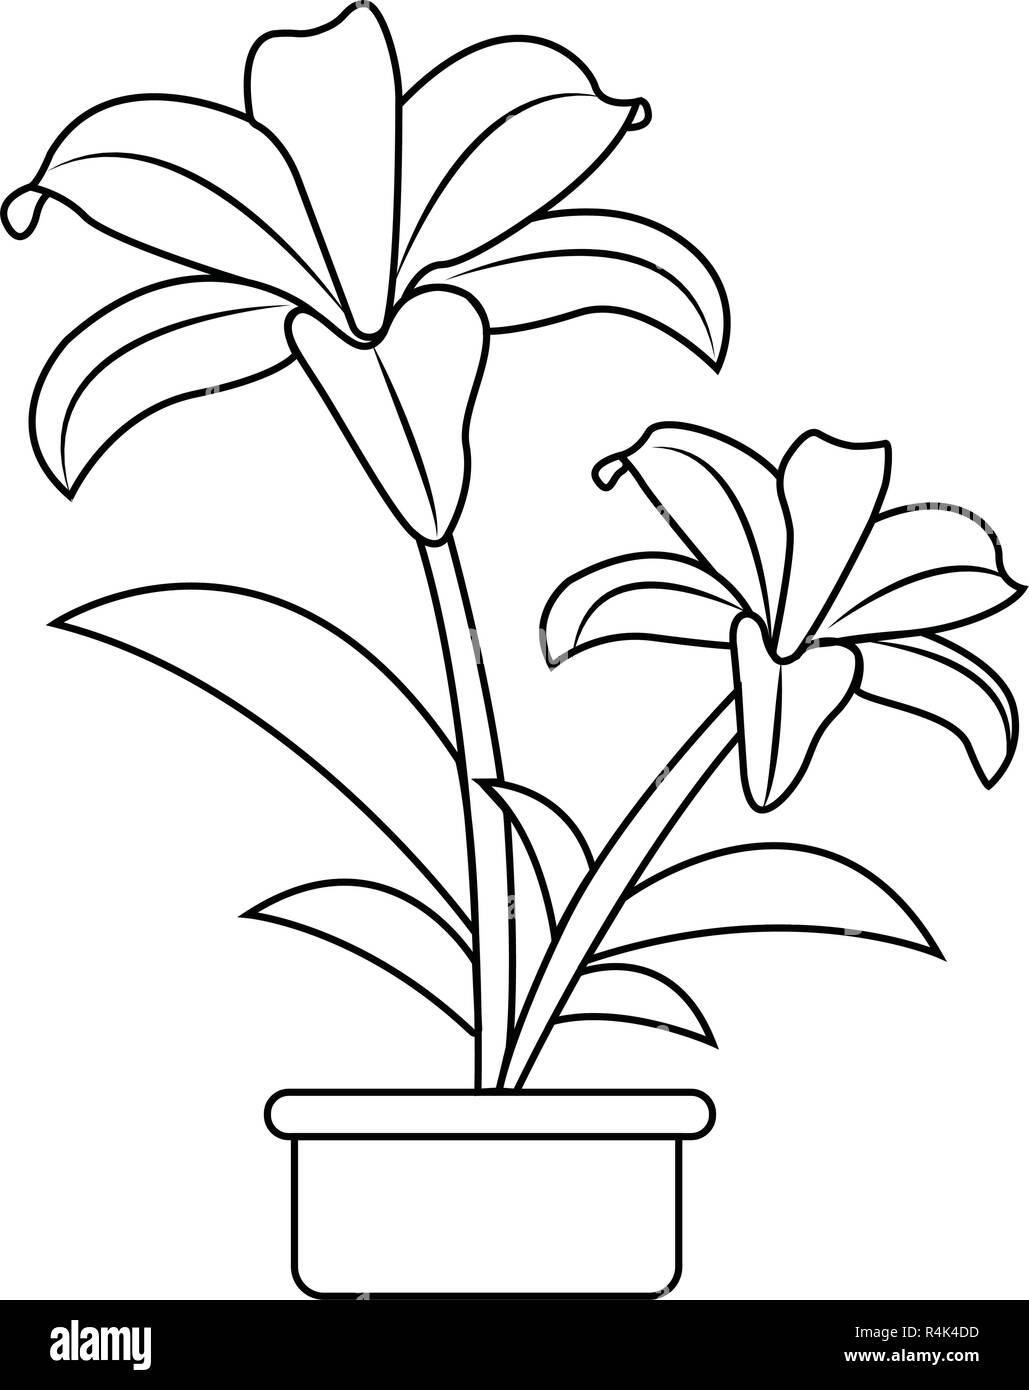 Cute Drawing Plant Stock Vector Image Art Alamy